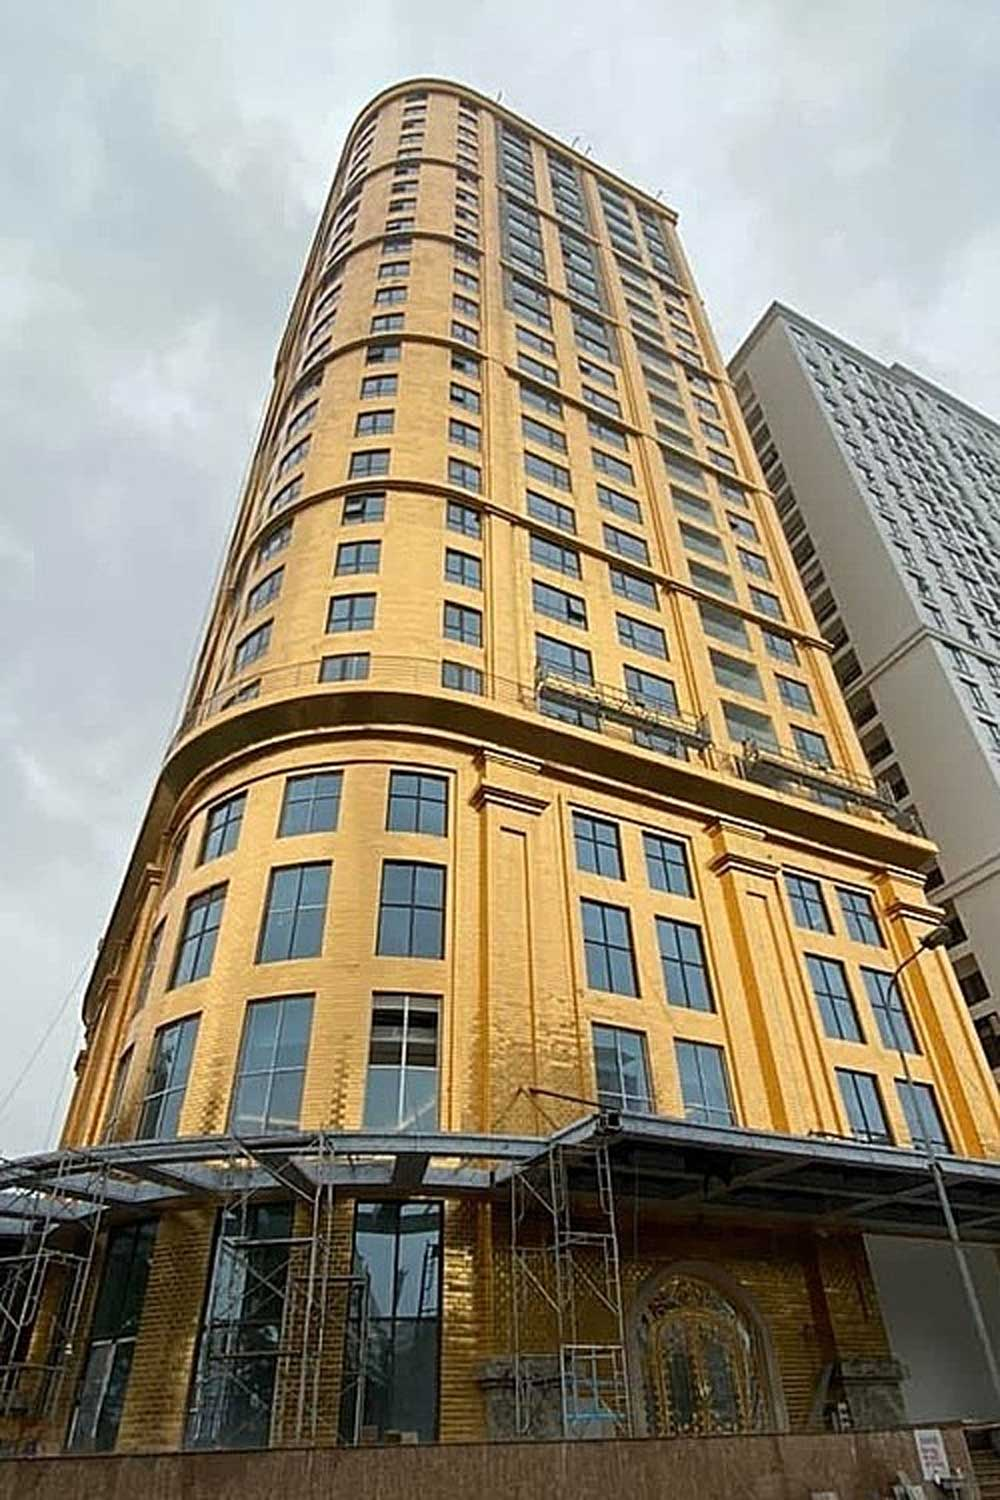 World's first, gold-plated hotel, open in Hanoi, new capital hotel, real gold,  glitzy lodgers, Ba Dinh District, luxury hotel, Formula One race